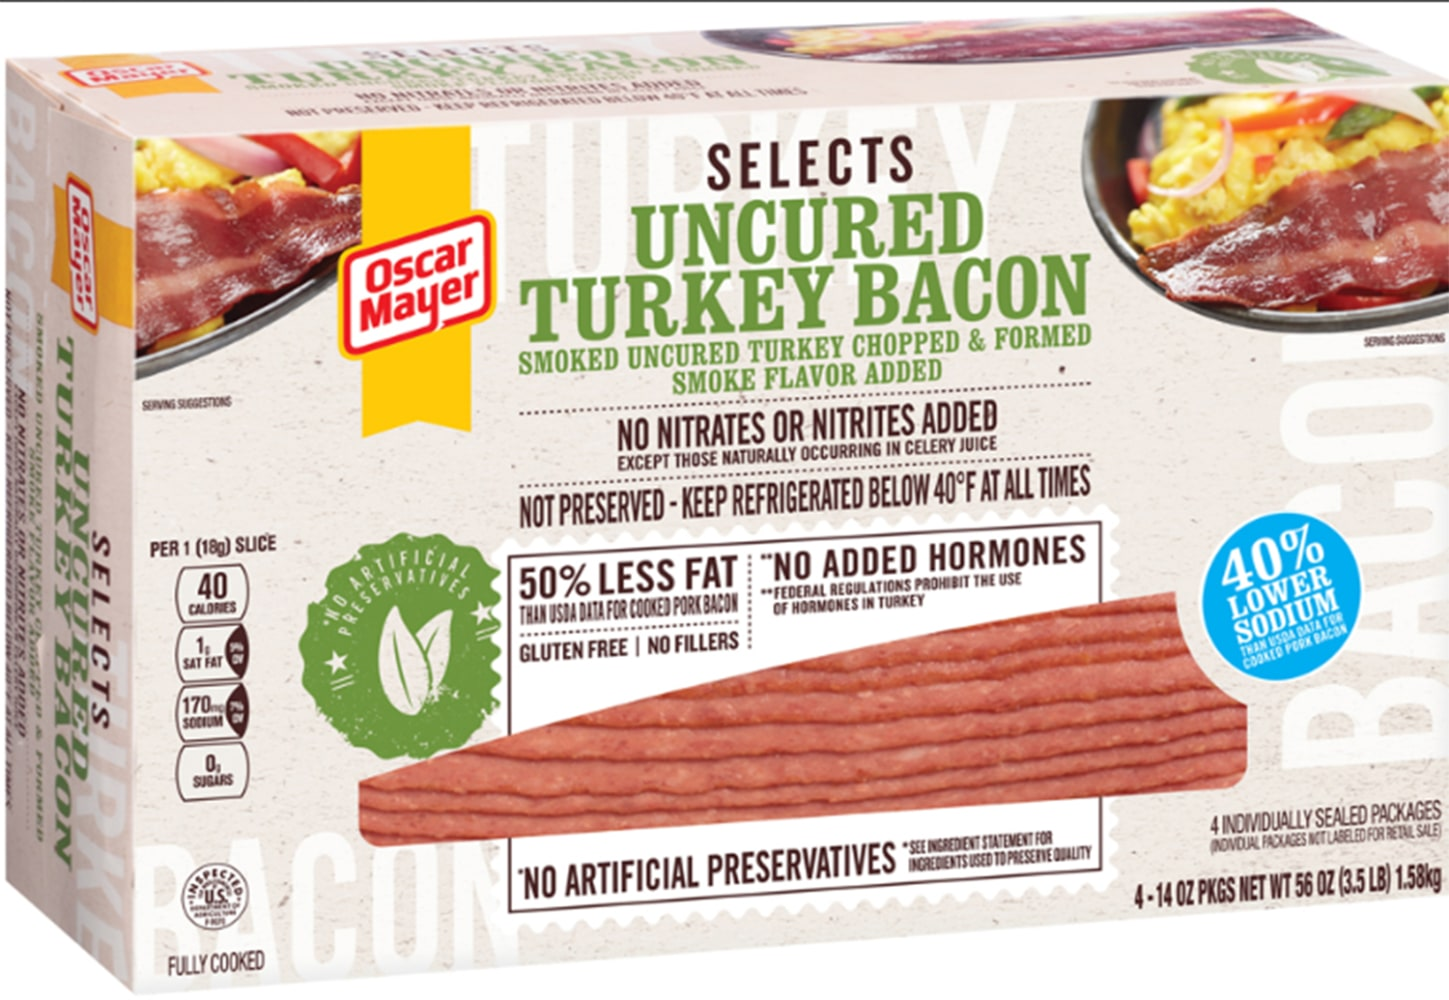 24287248 besides Kraft Heinz Recalls 2m Pounds Oscar Mayer Turkey Bacon After N416146 besides 8865 Hot Dogs Bacon Sausage additionally 22309203 together with 50TH ANIVERSARY CORVETTE WALL CLOCK WCAR SOUNDS name 5518877 auction id auction details. on oscar mayer turkey select dogs